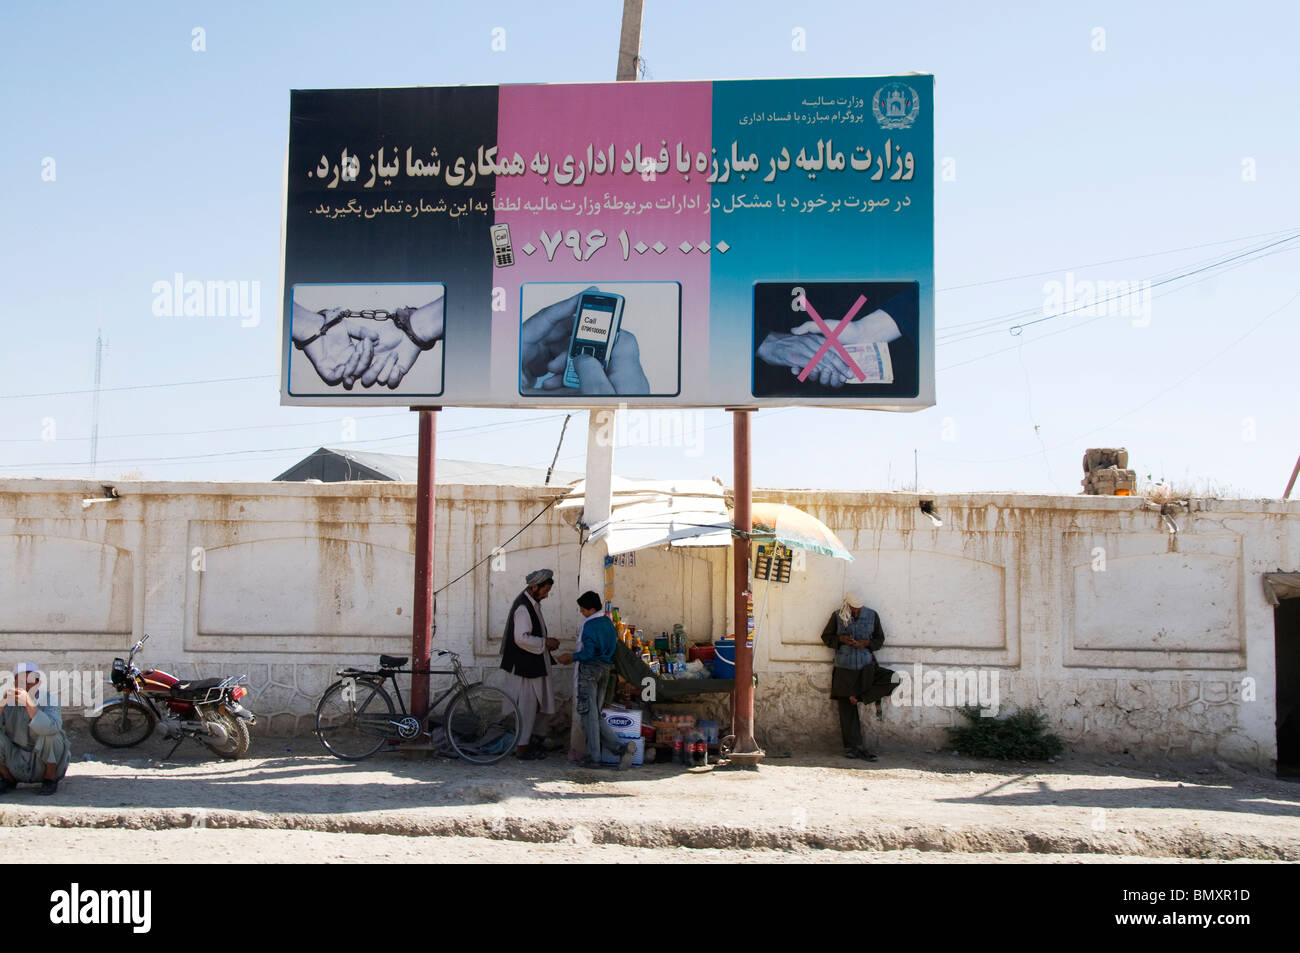 Balkh province Afghanistan. Mazar e Sharif. Street poster encouraging people to report corruption - Stock Image